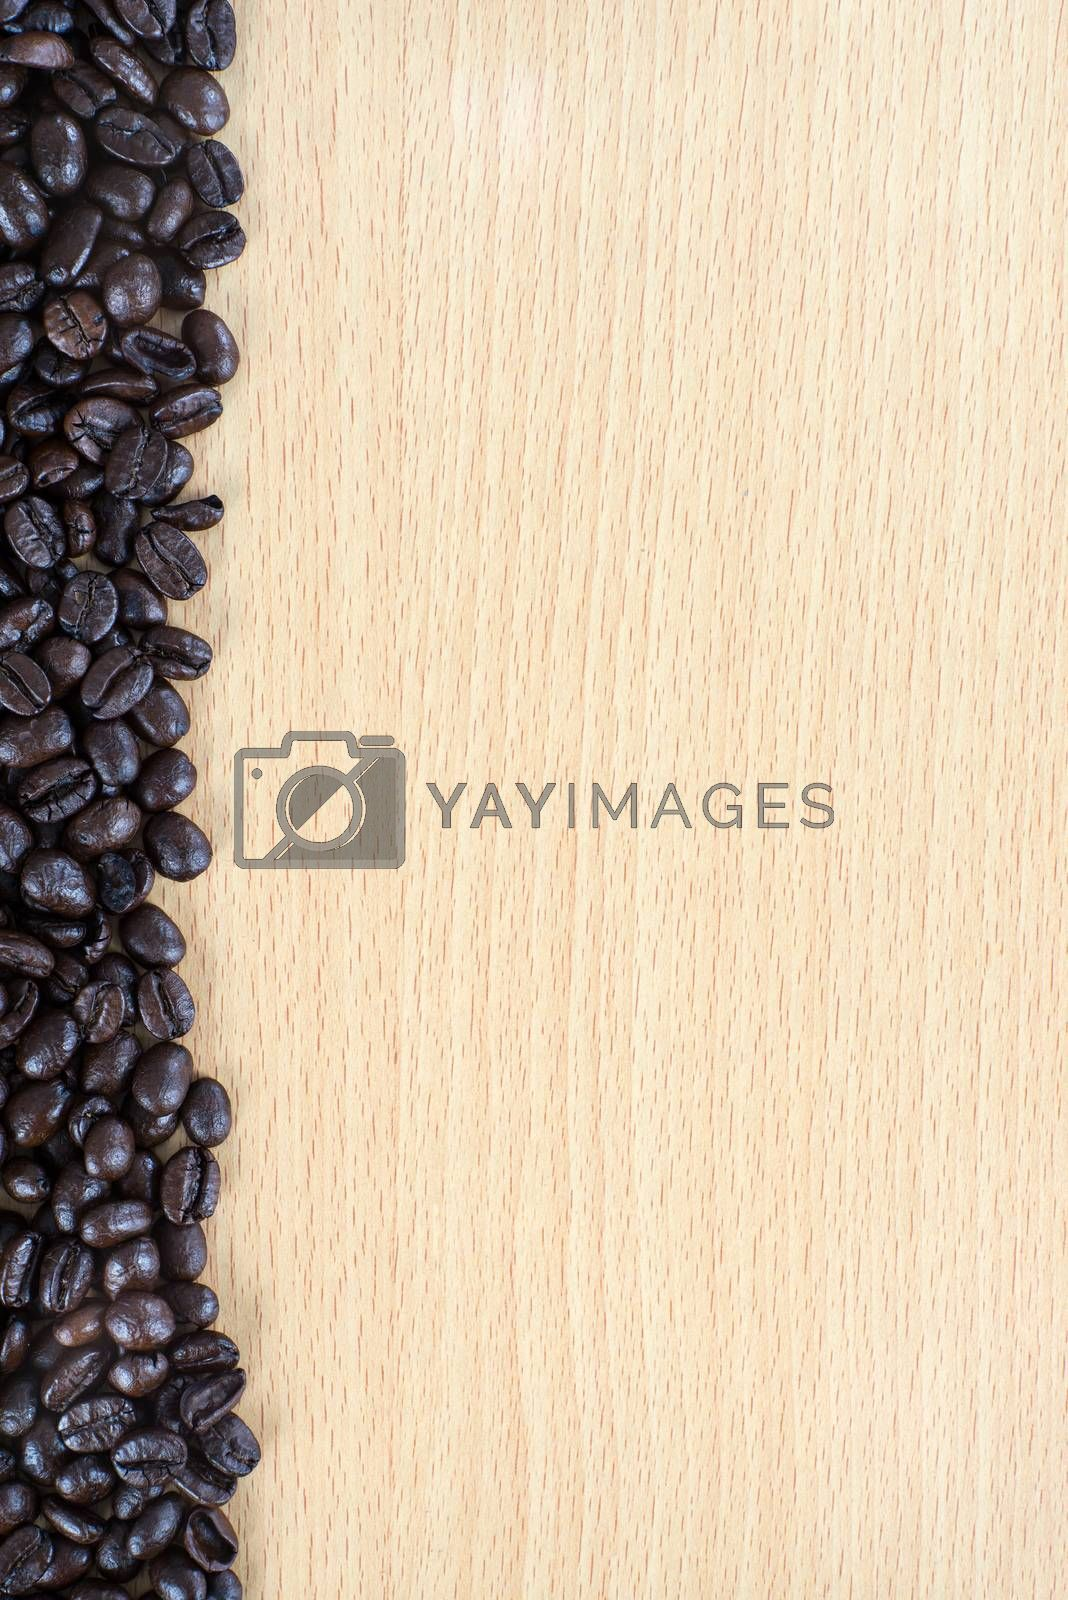 Royalty free image of Coffee bean on wood background by iamway